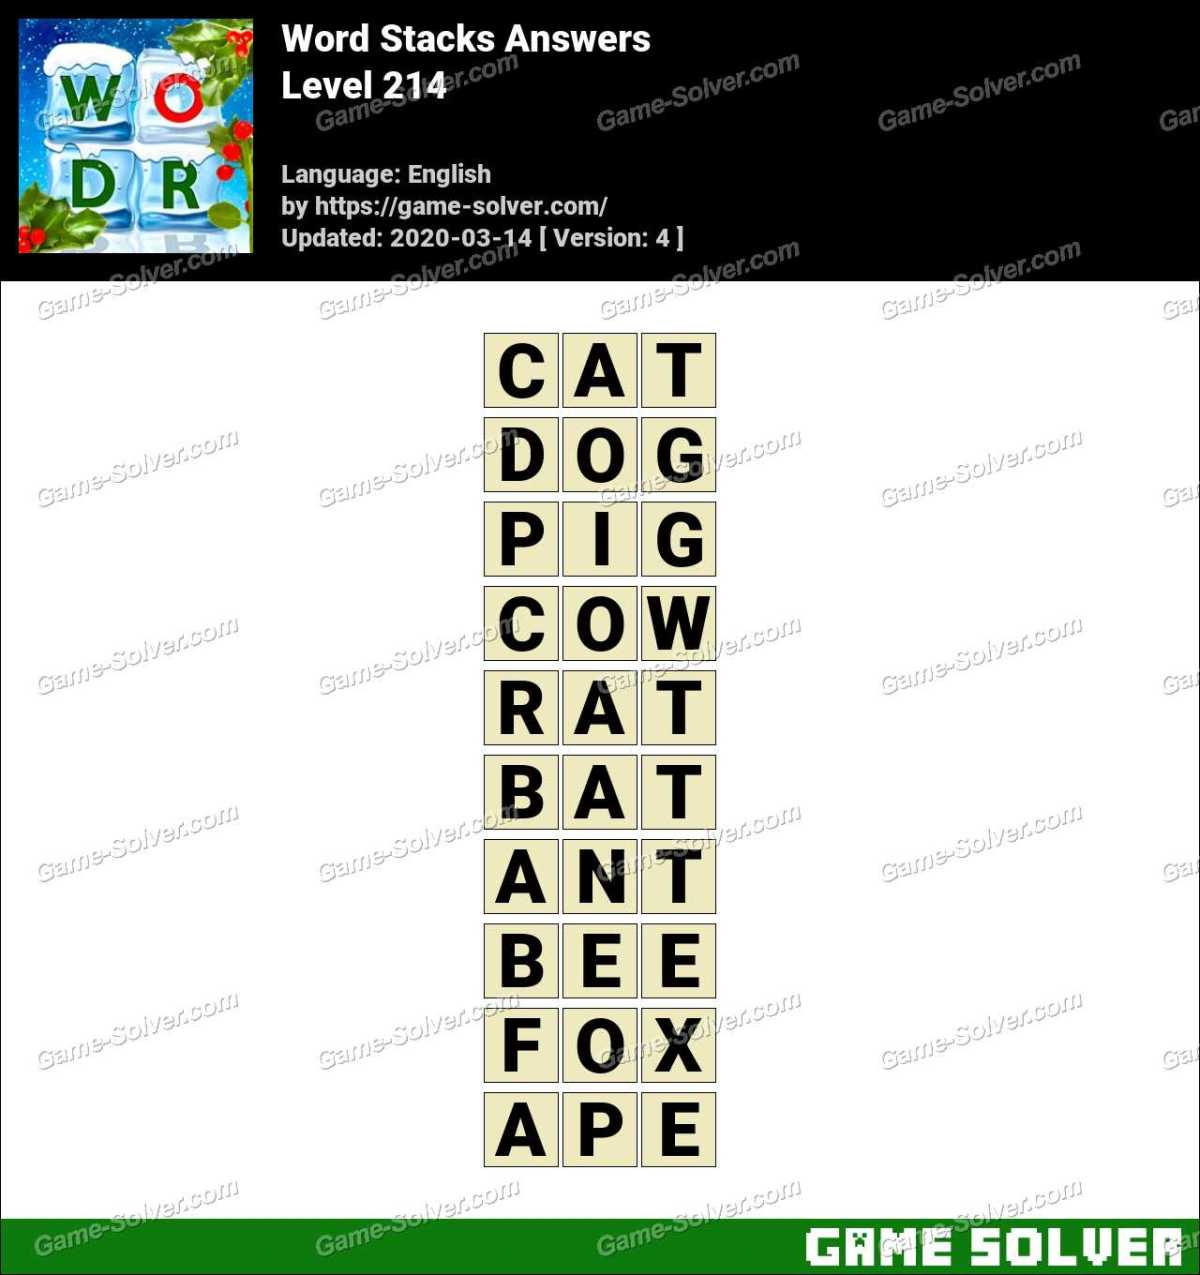 Word Stacks Level 214 Answers